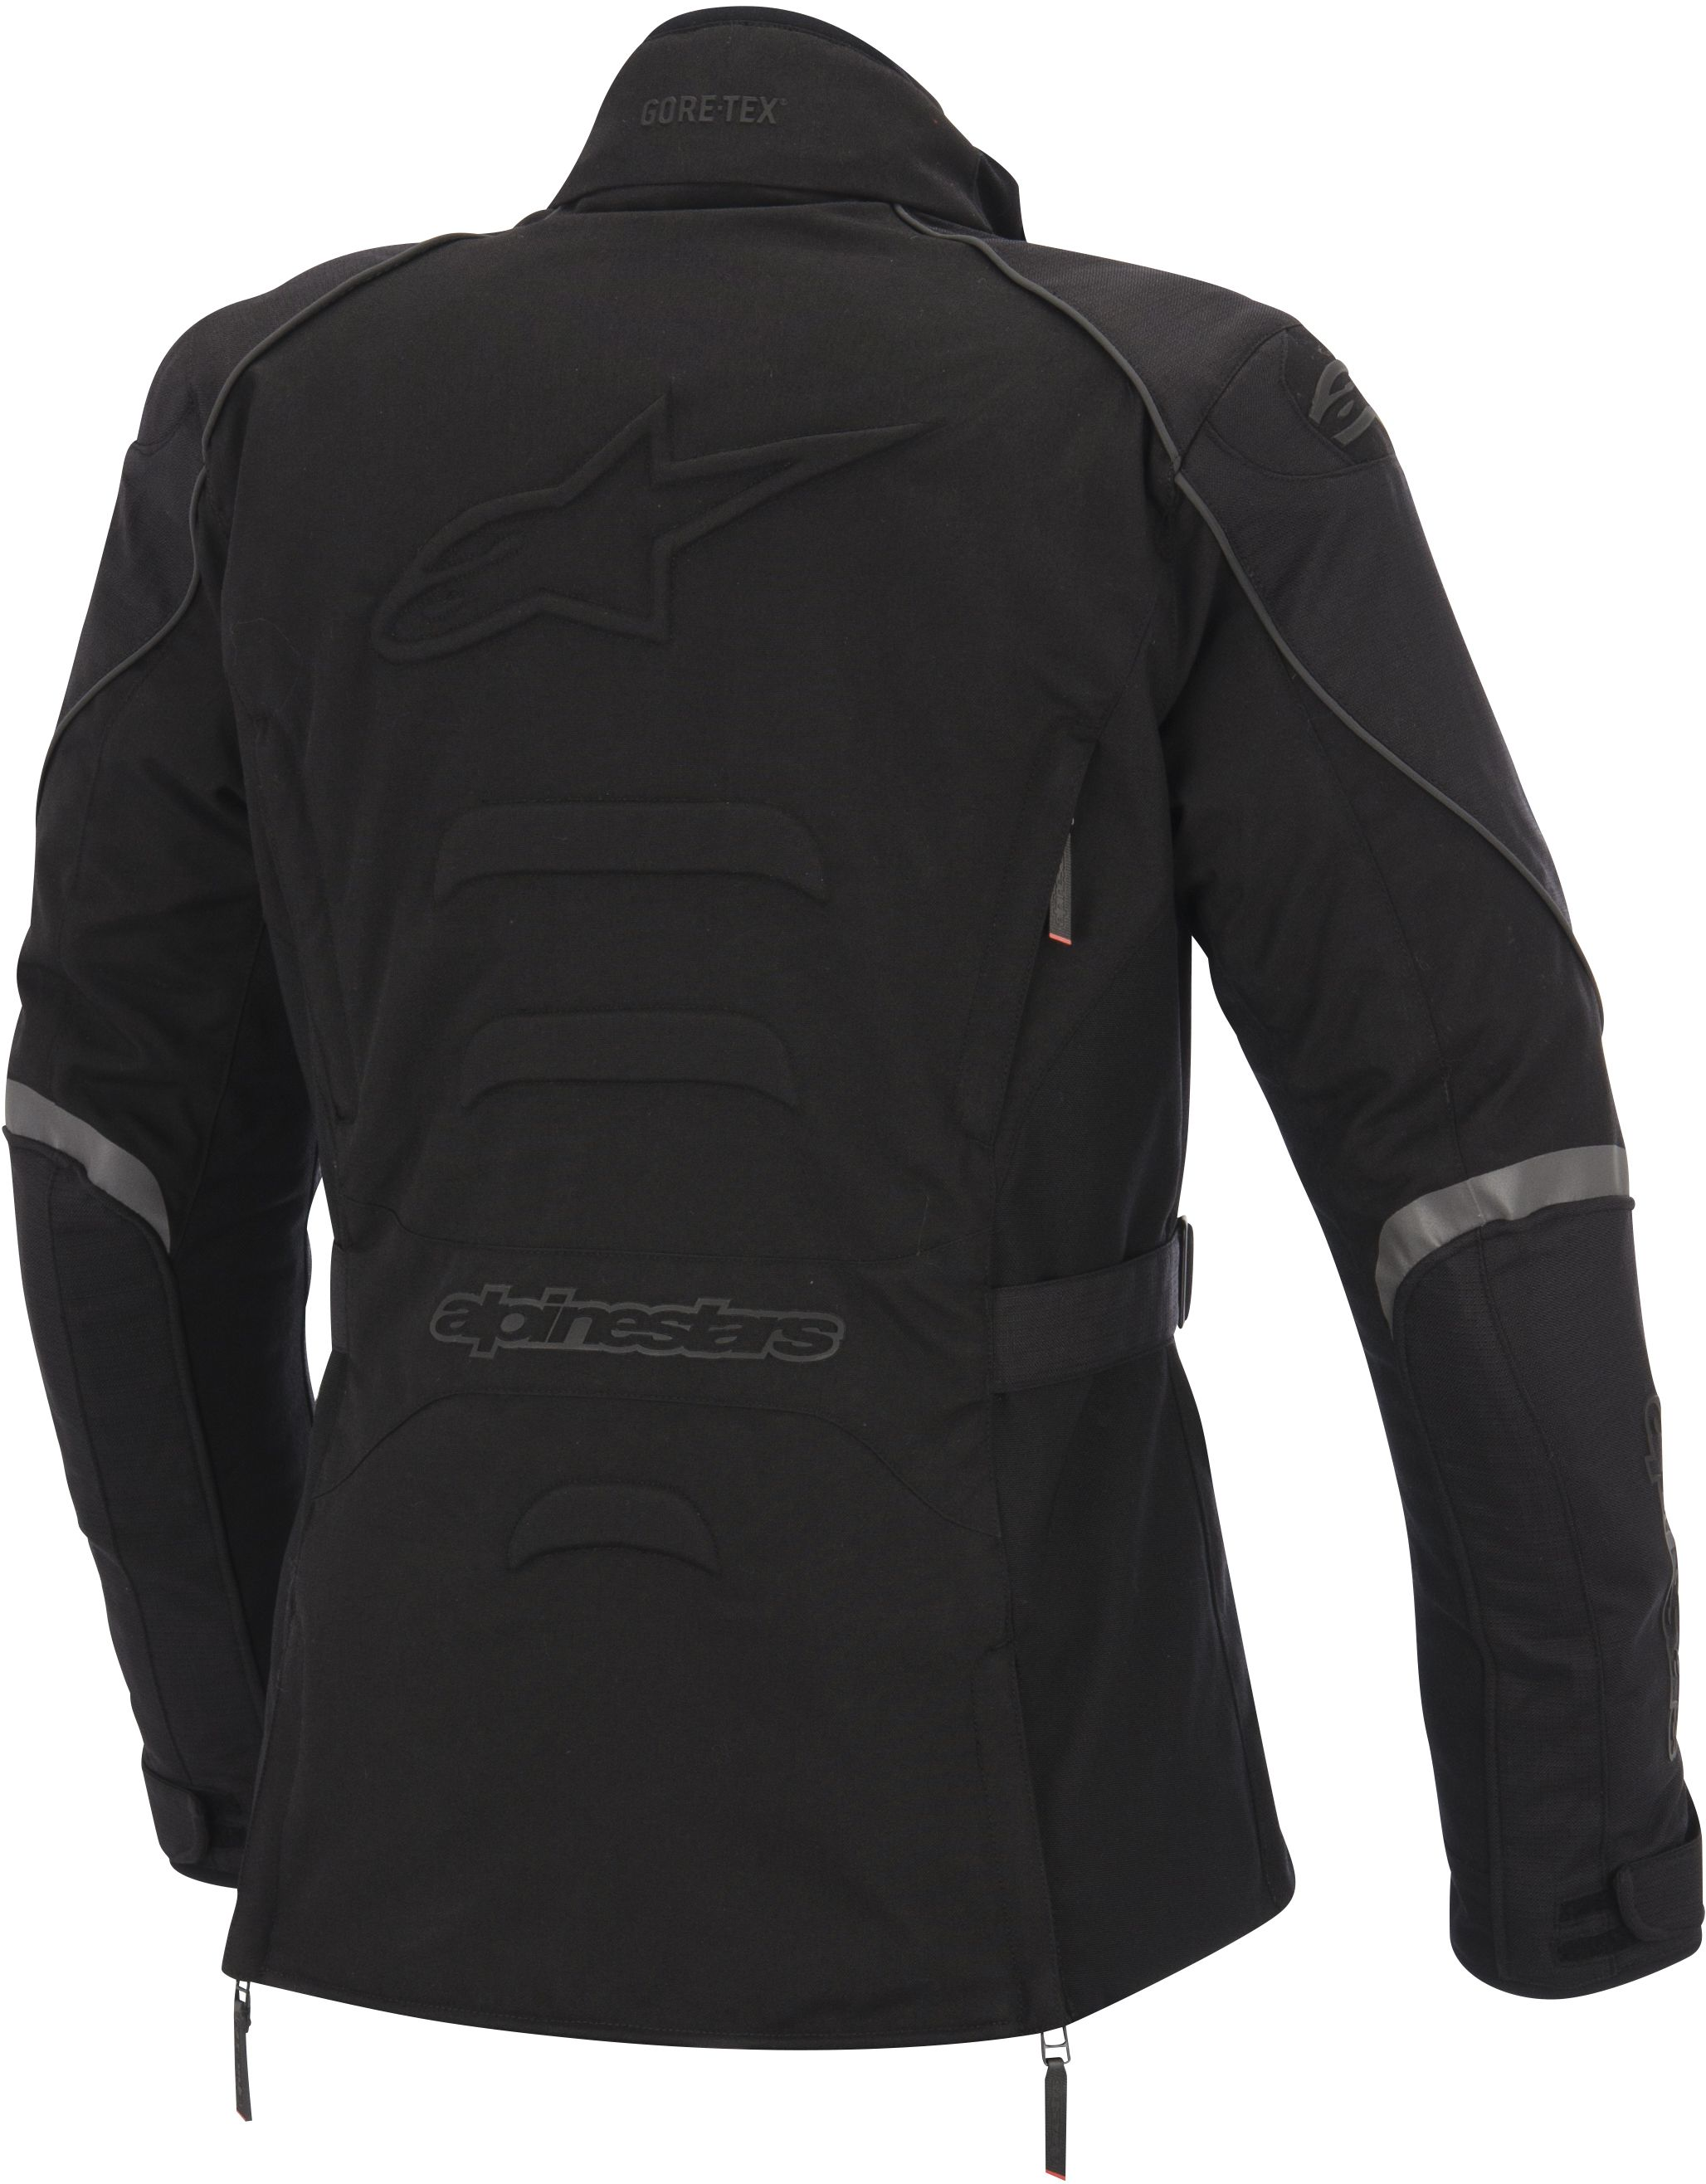 alpinestars_new_land_gtx_jacket_black_black